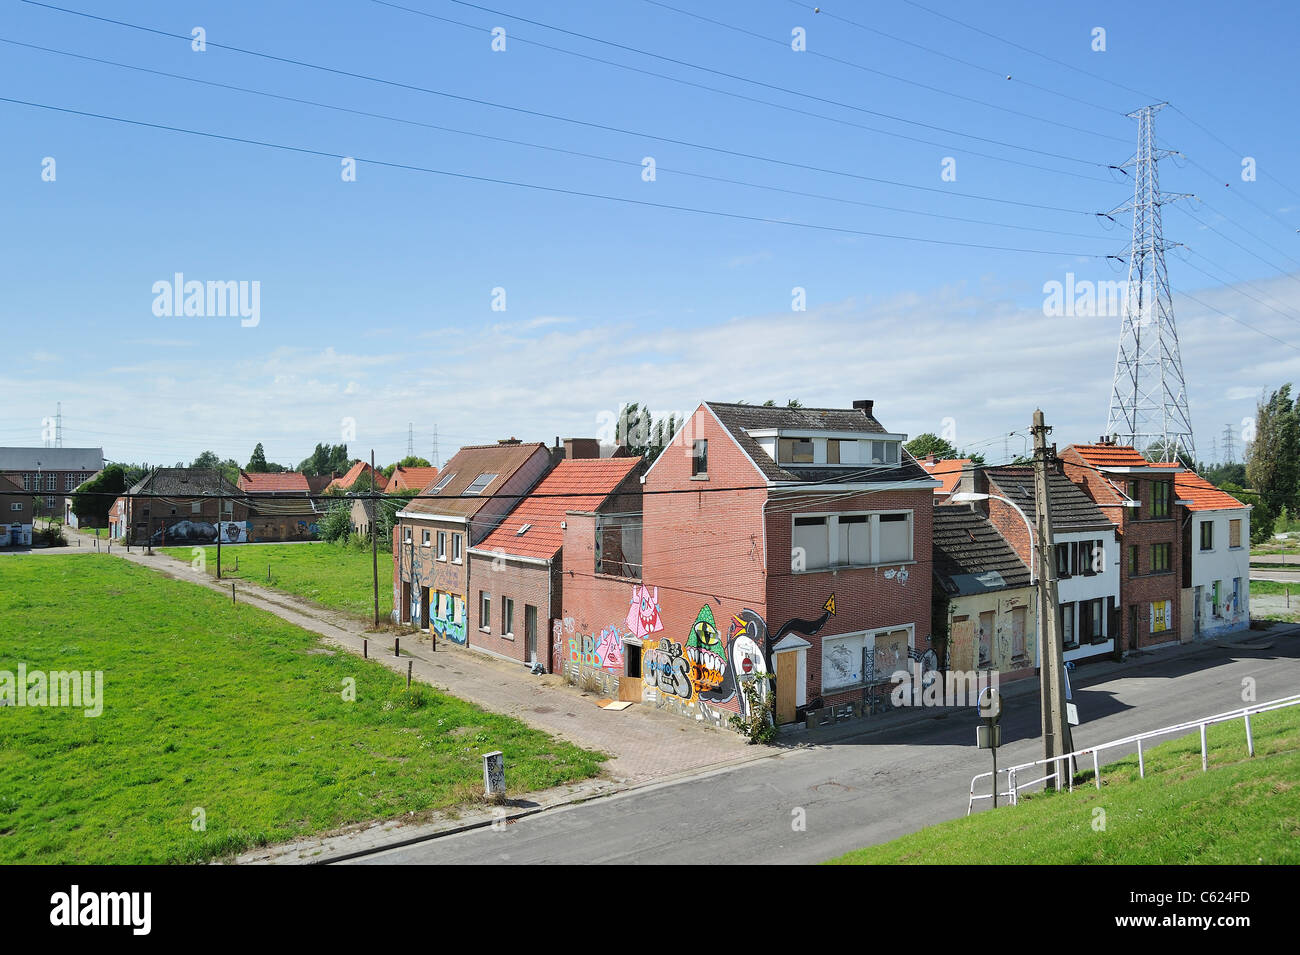 The desolate ghost village Doel along the Antwerp port with abandoned houses occupied by squatters after expropriation, - Stock Image